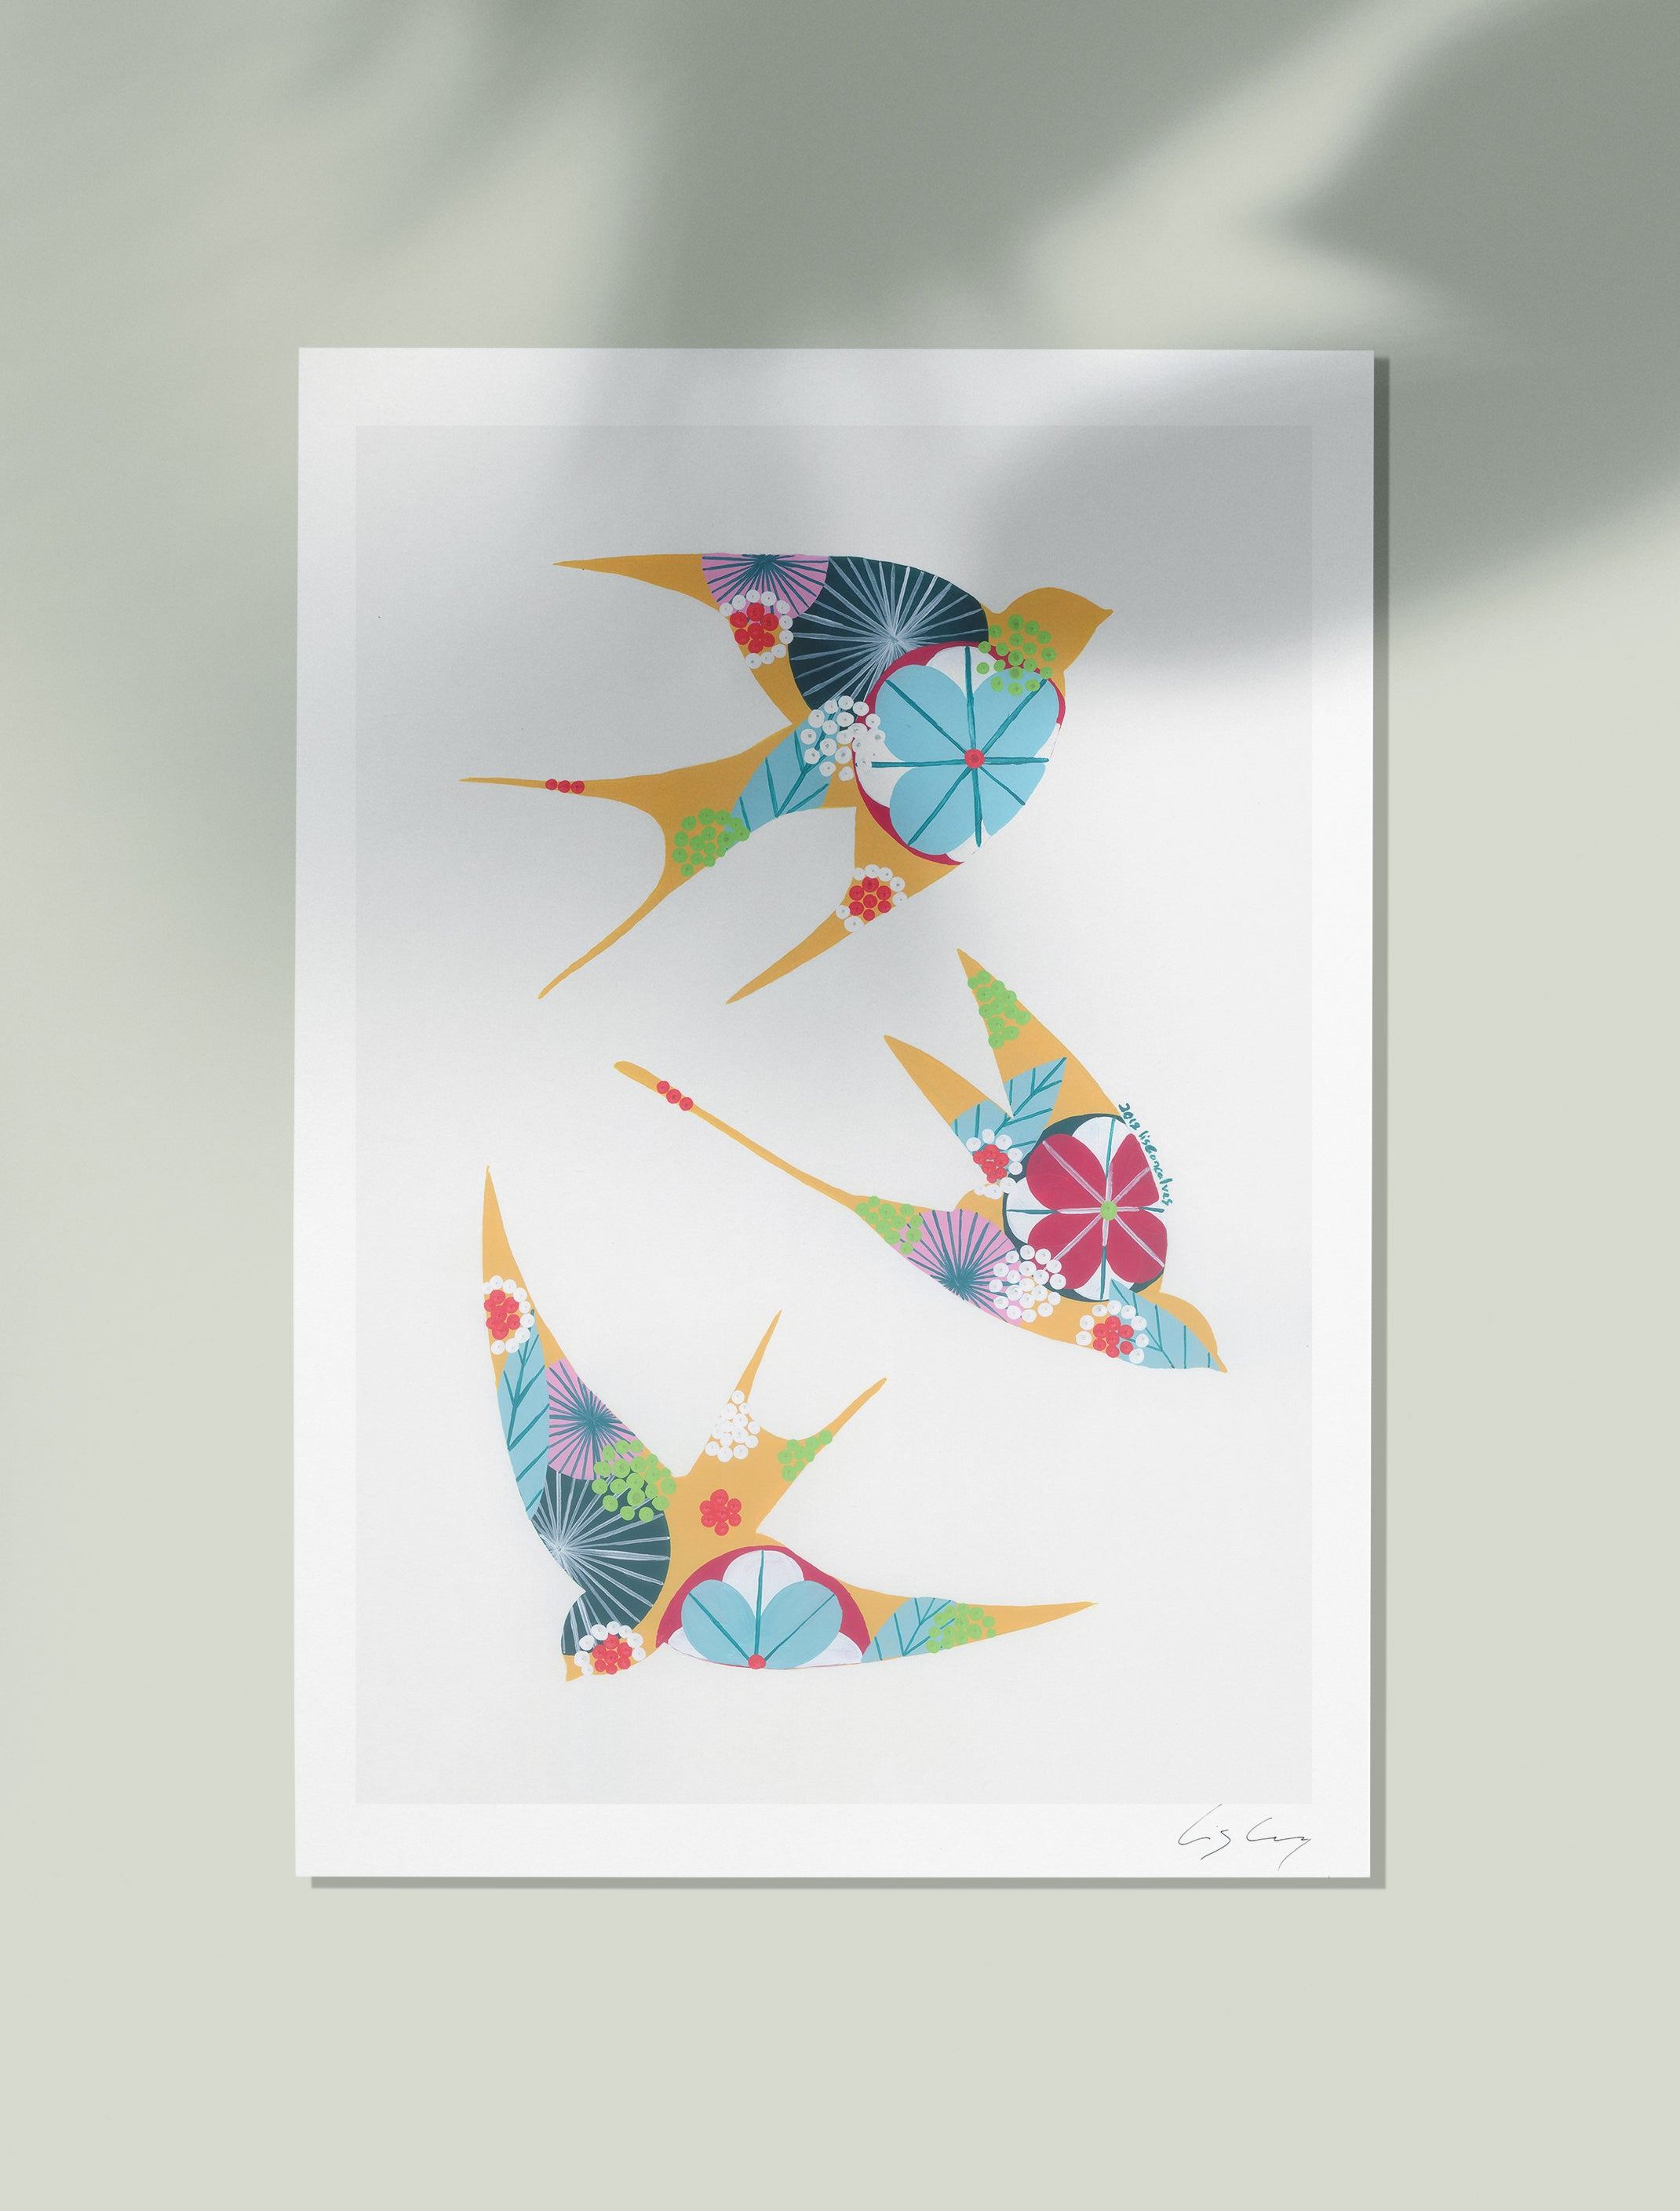 Swallows giclée print in ochre yellow